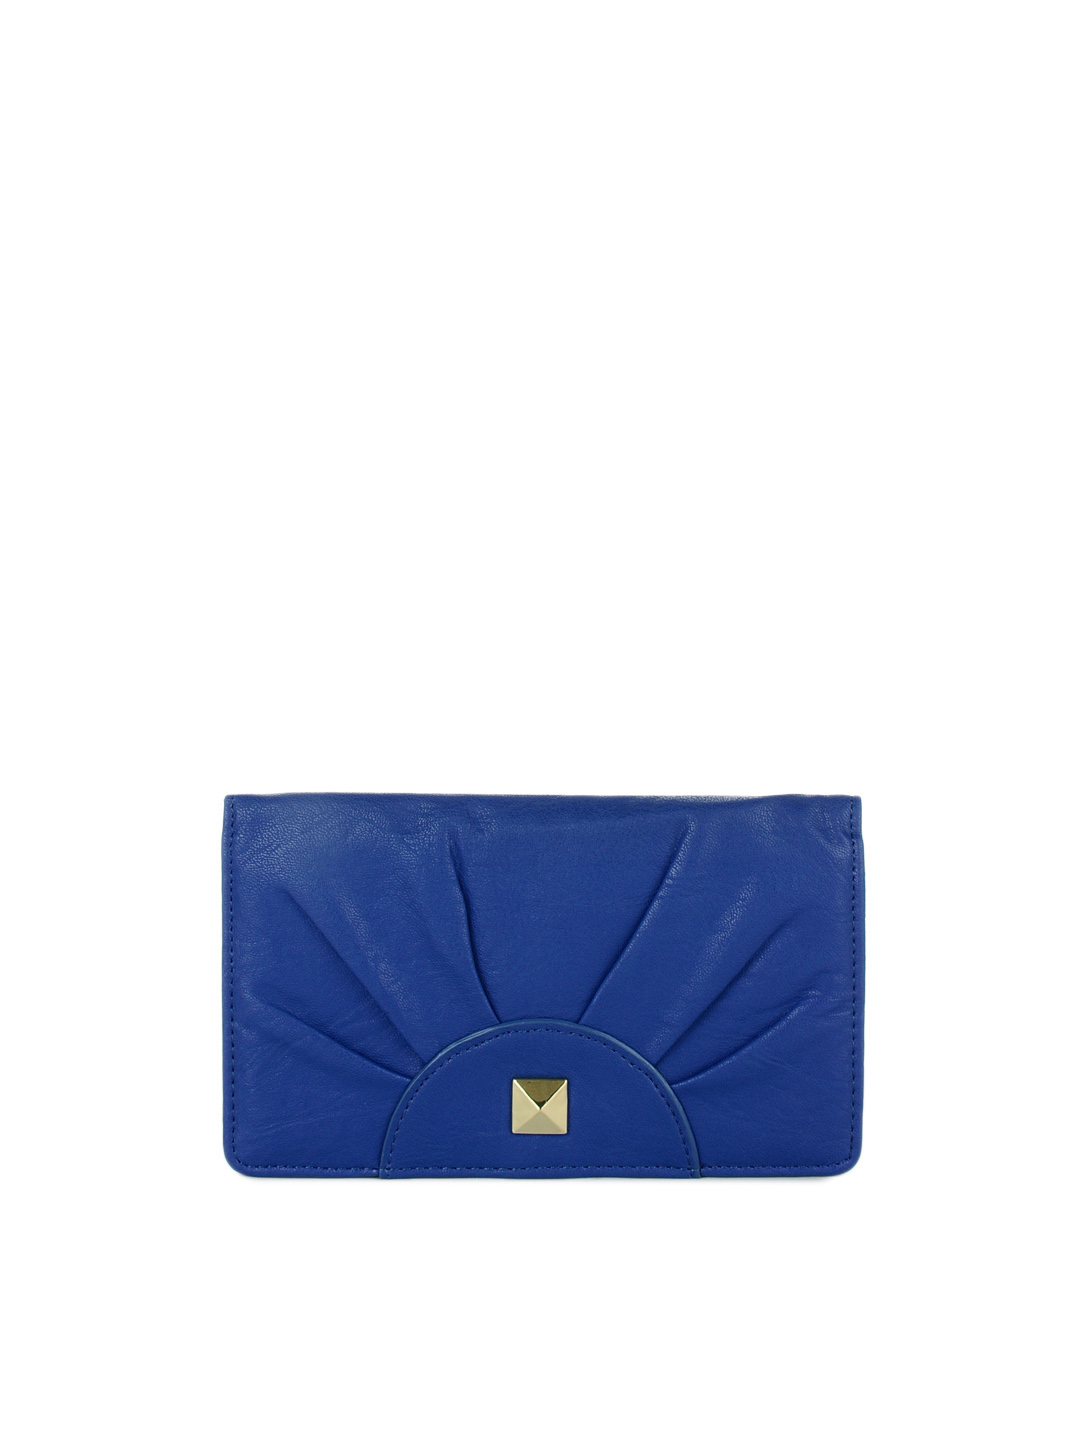 Miss Fiorelli Women Blue Wallet